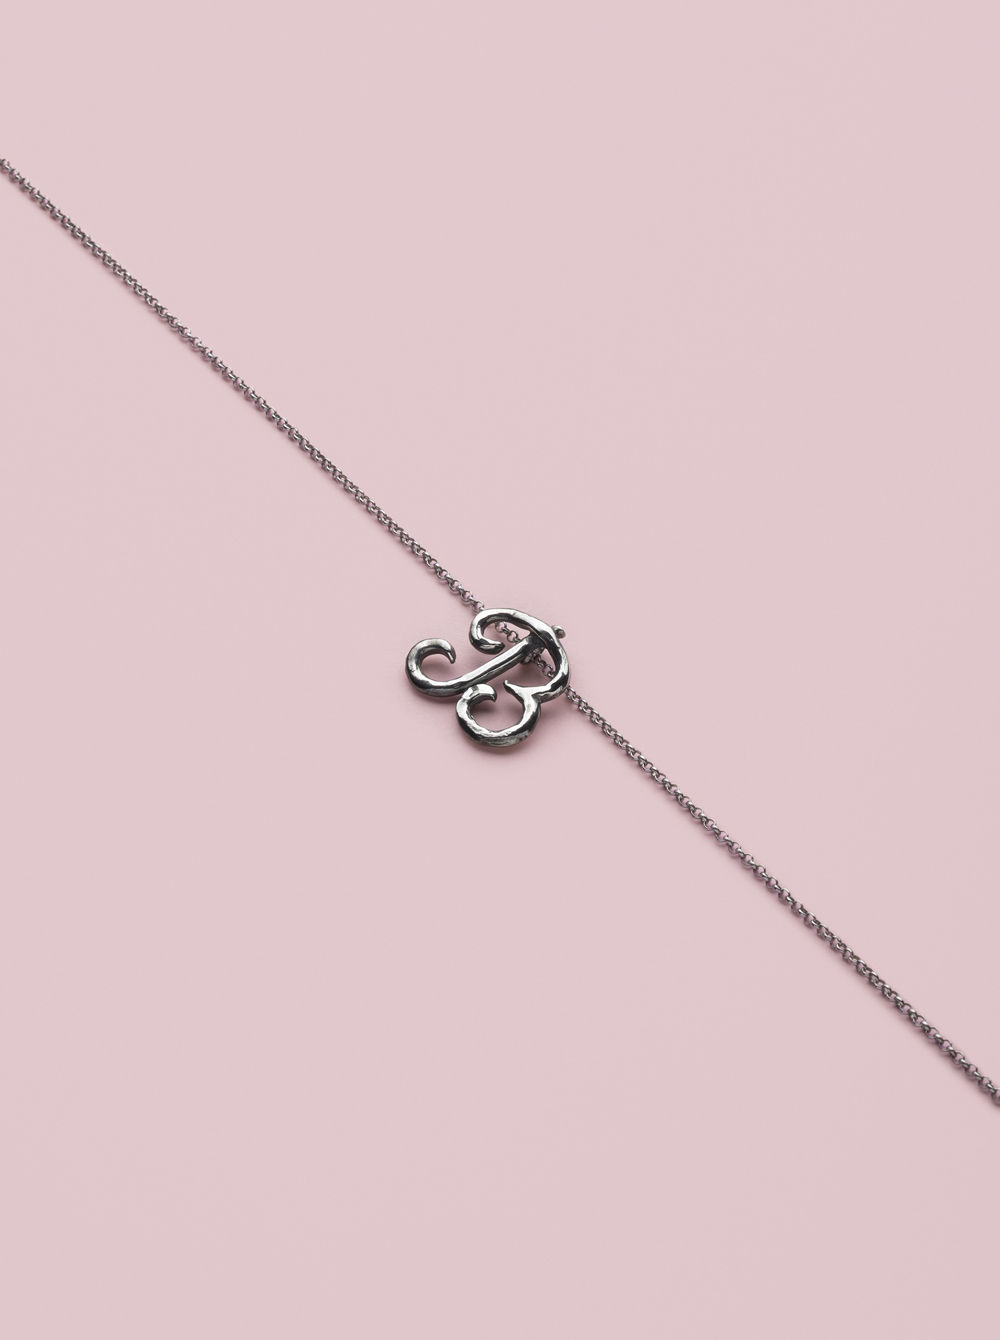 the silver initial pendant product